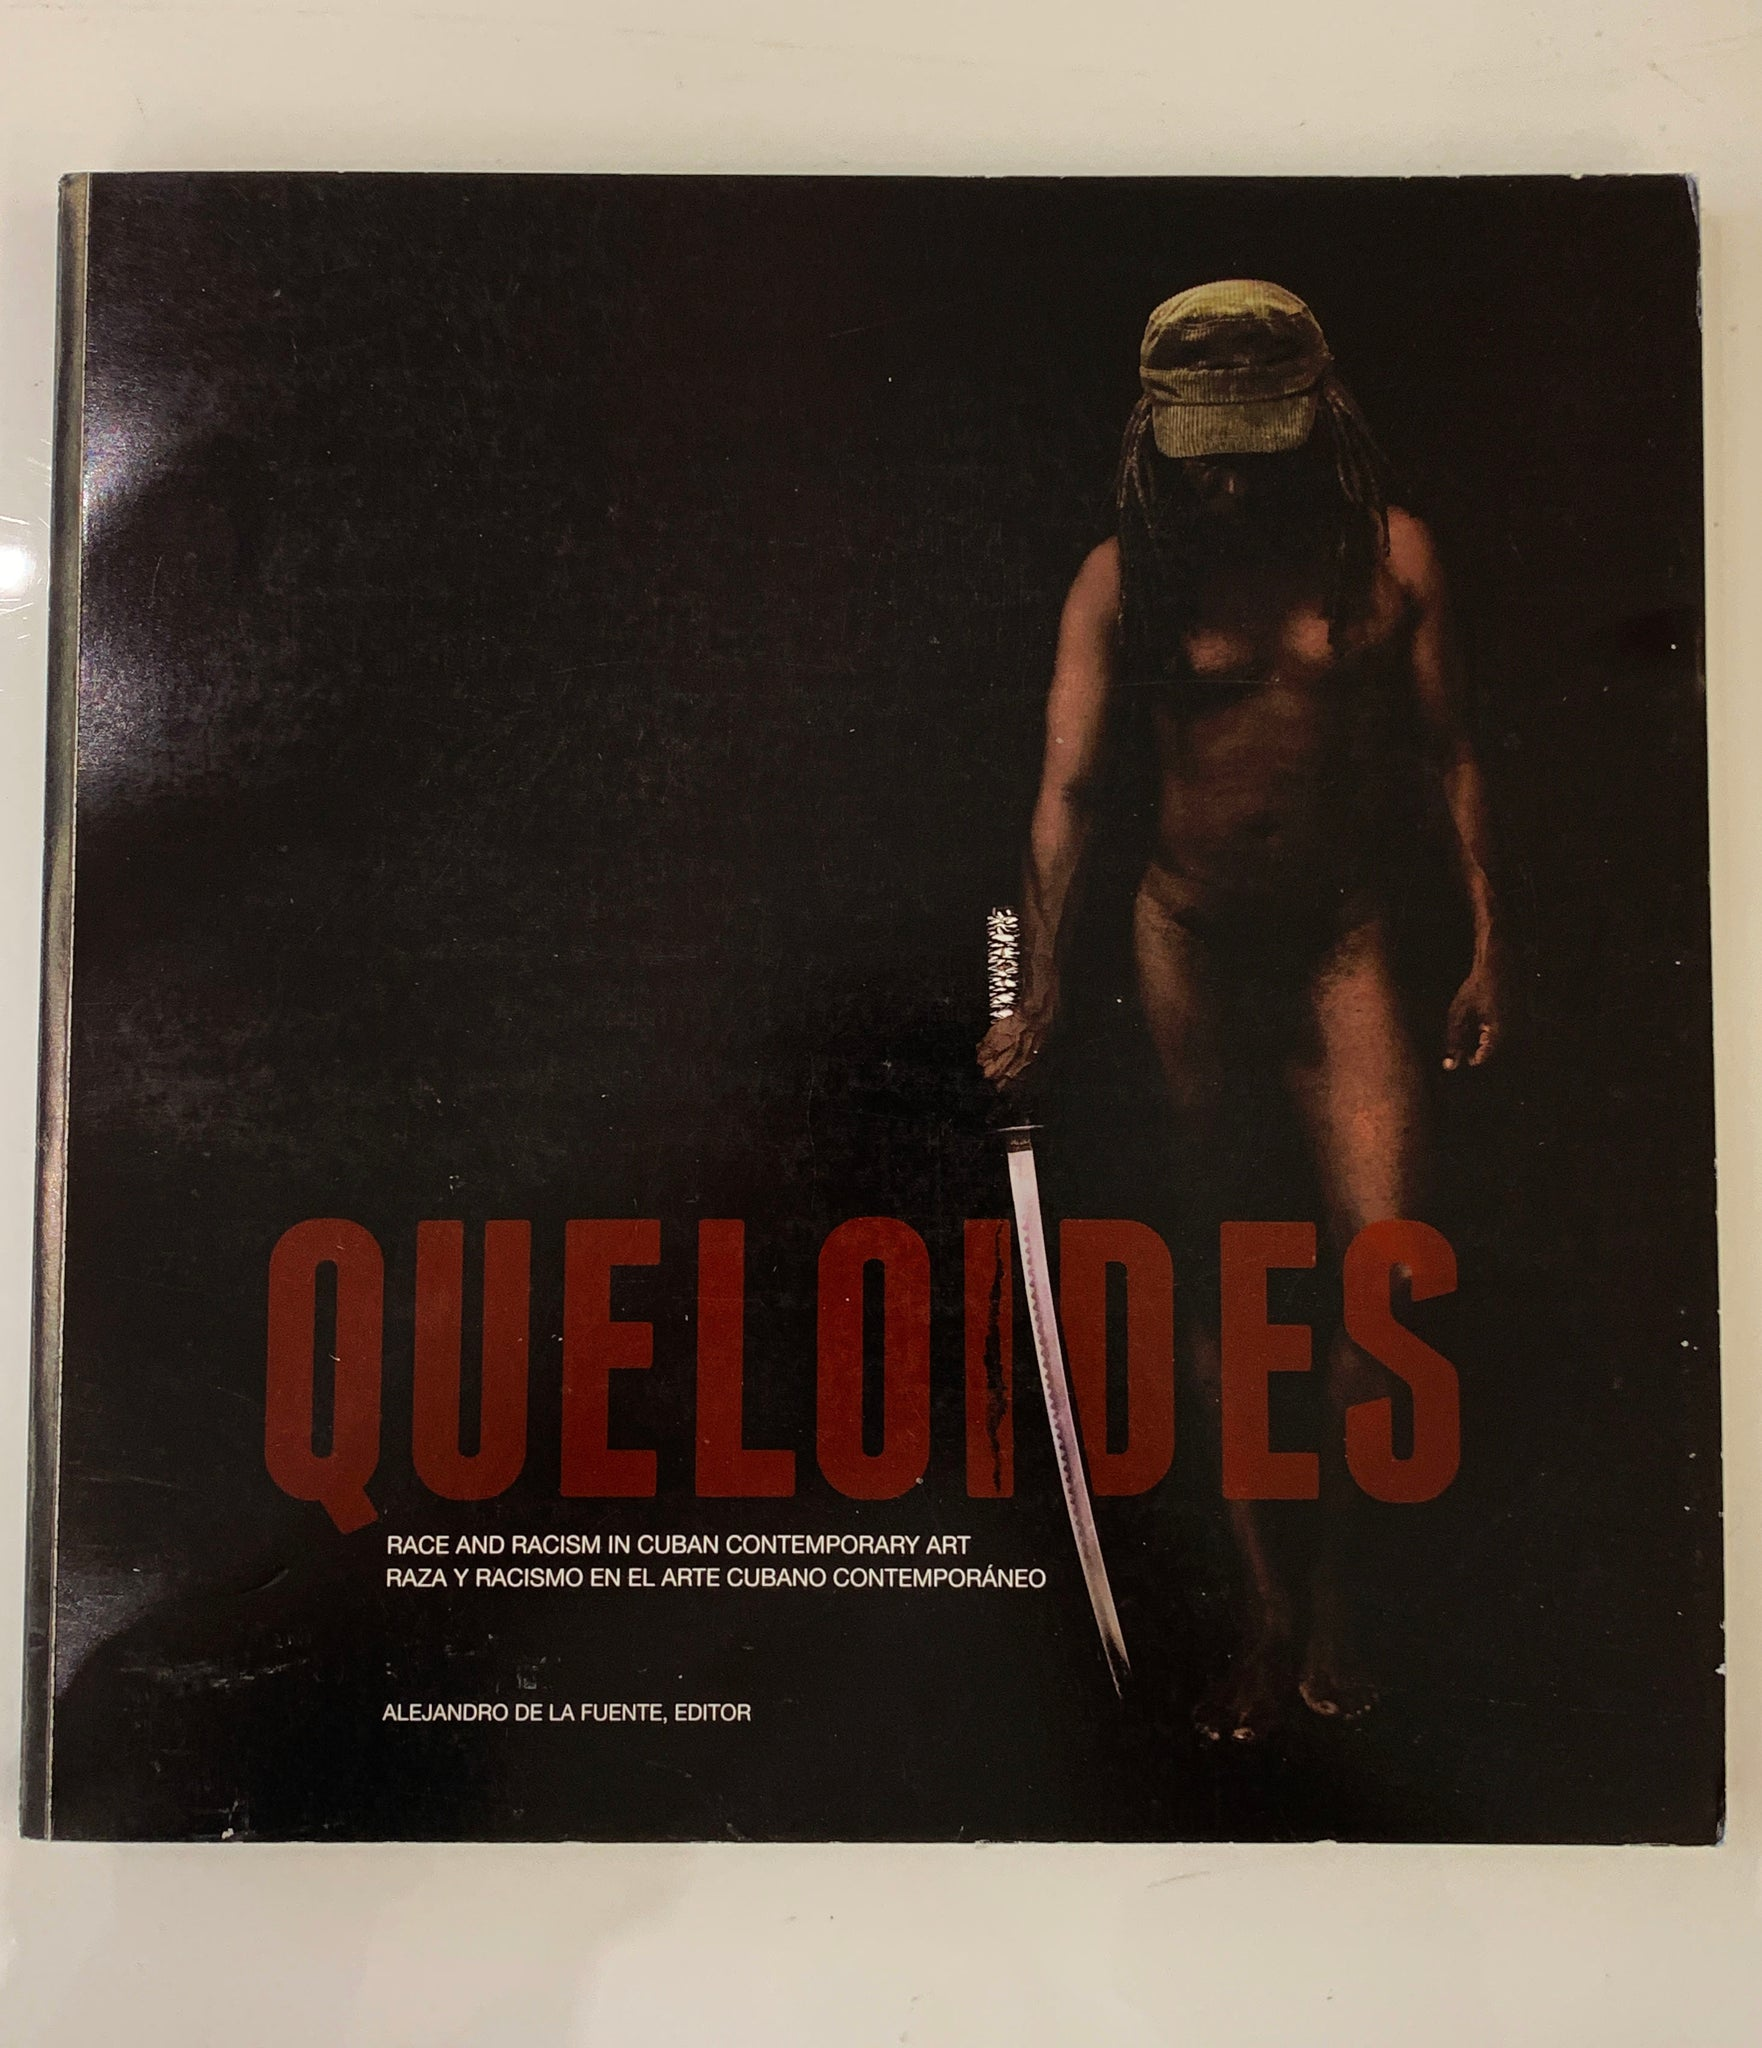 Queloides: Race and Racism in Cuban Contemporary Art